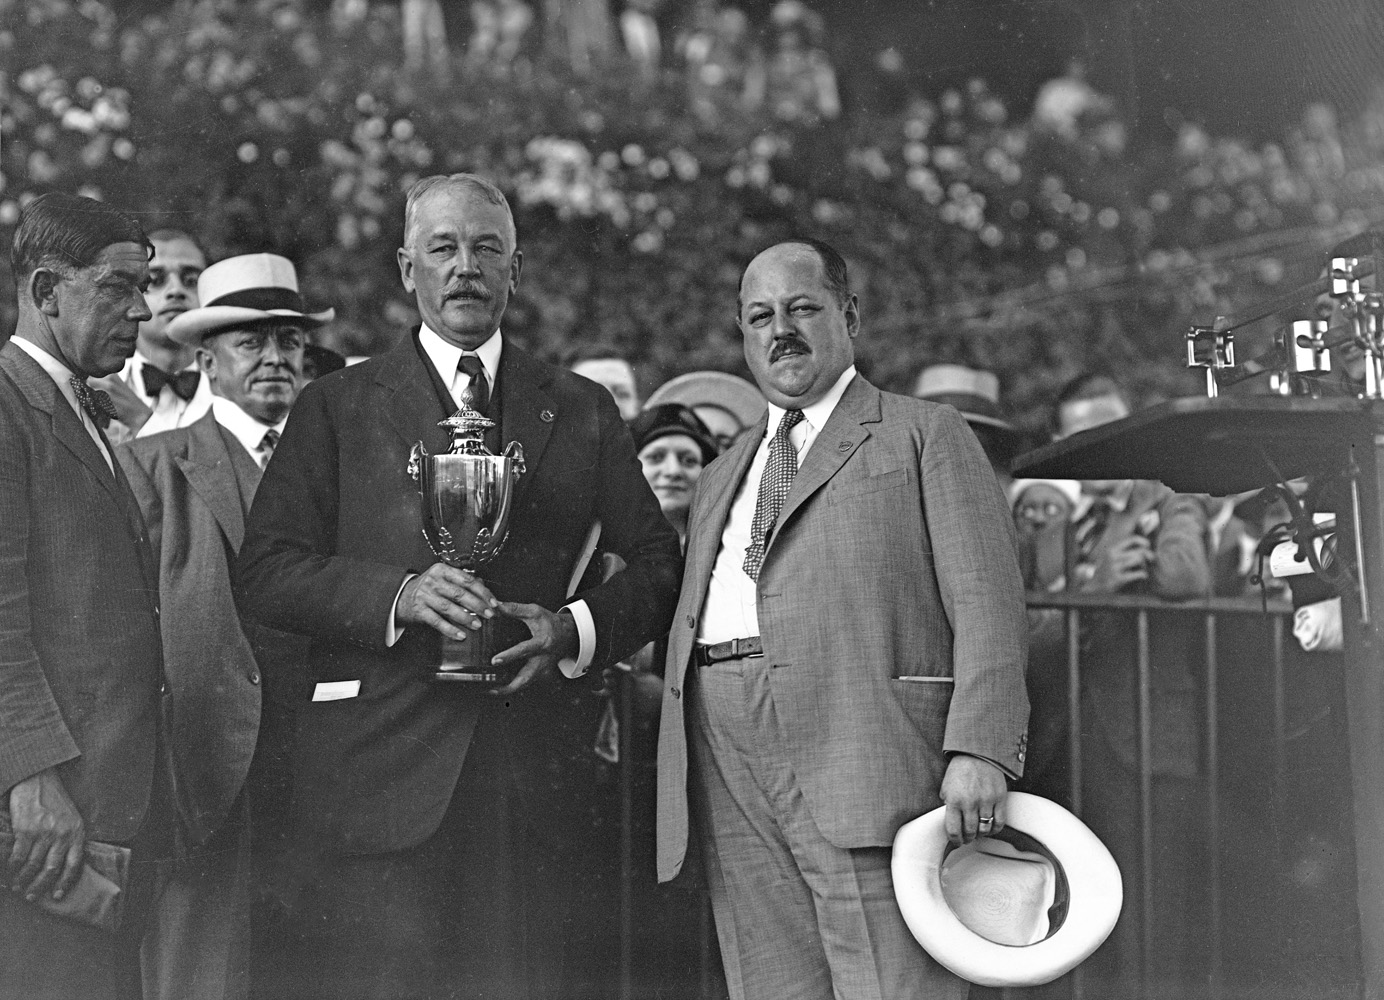 William Woodward, Sr. and George Bull at Saratoga (Keeneland Library Cook Collection)